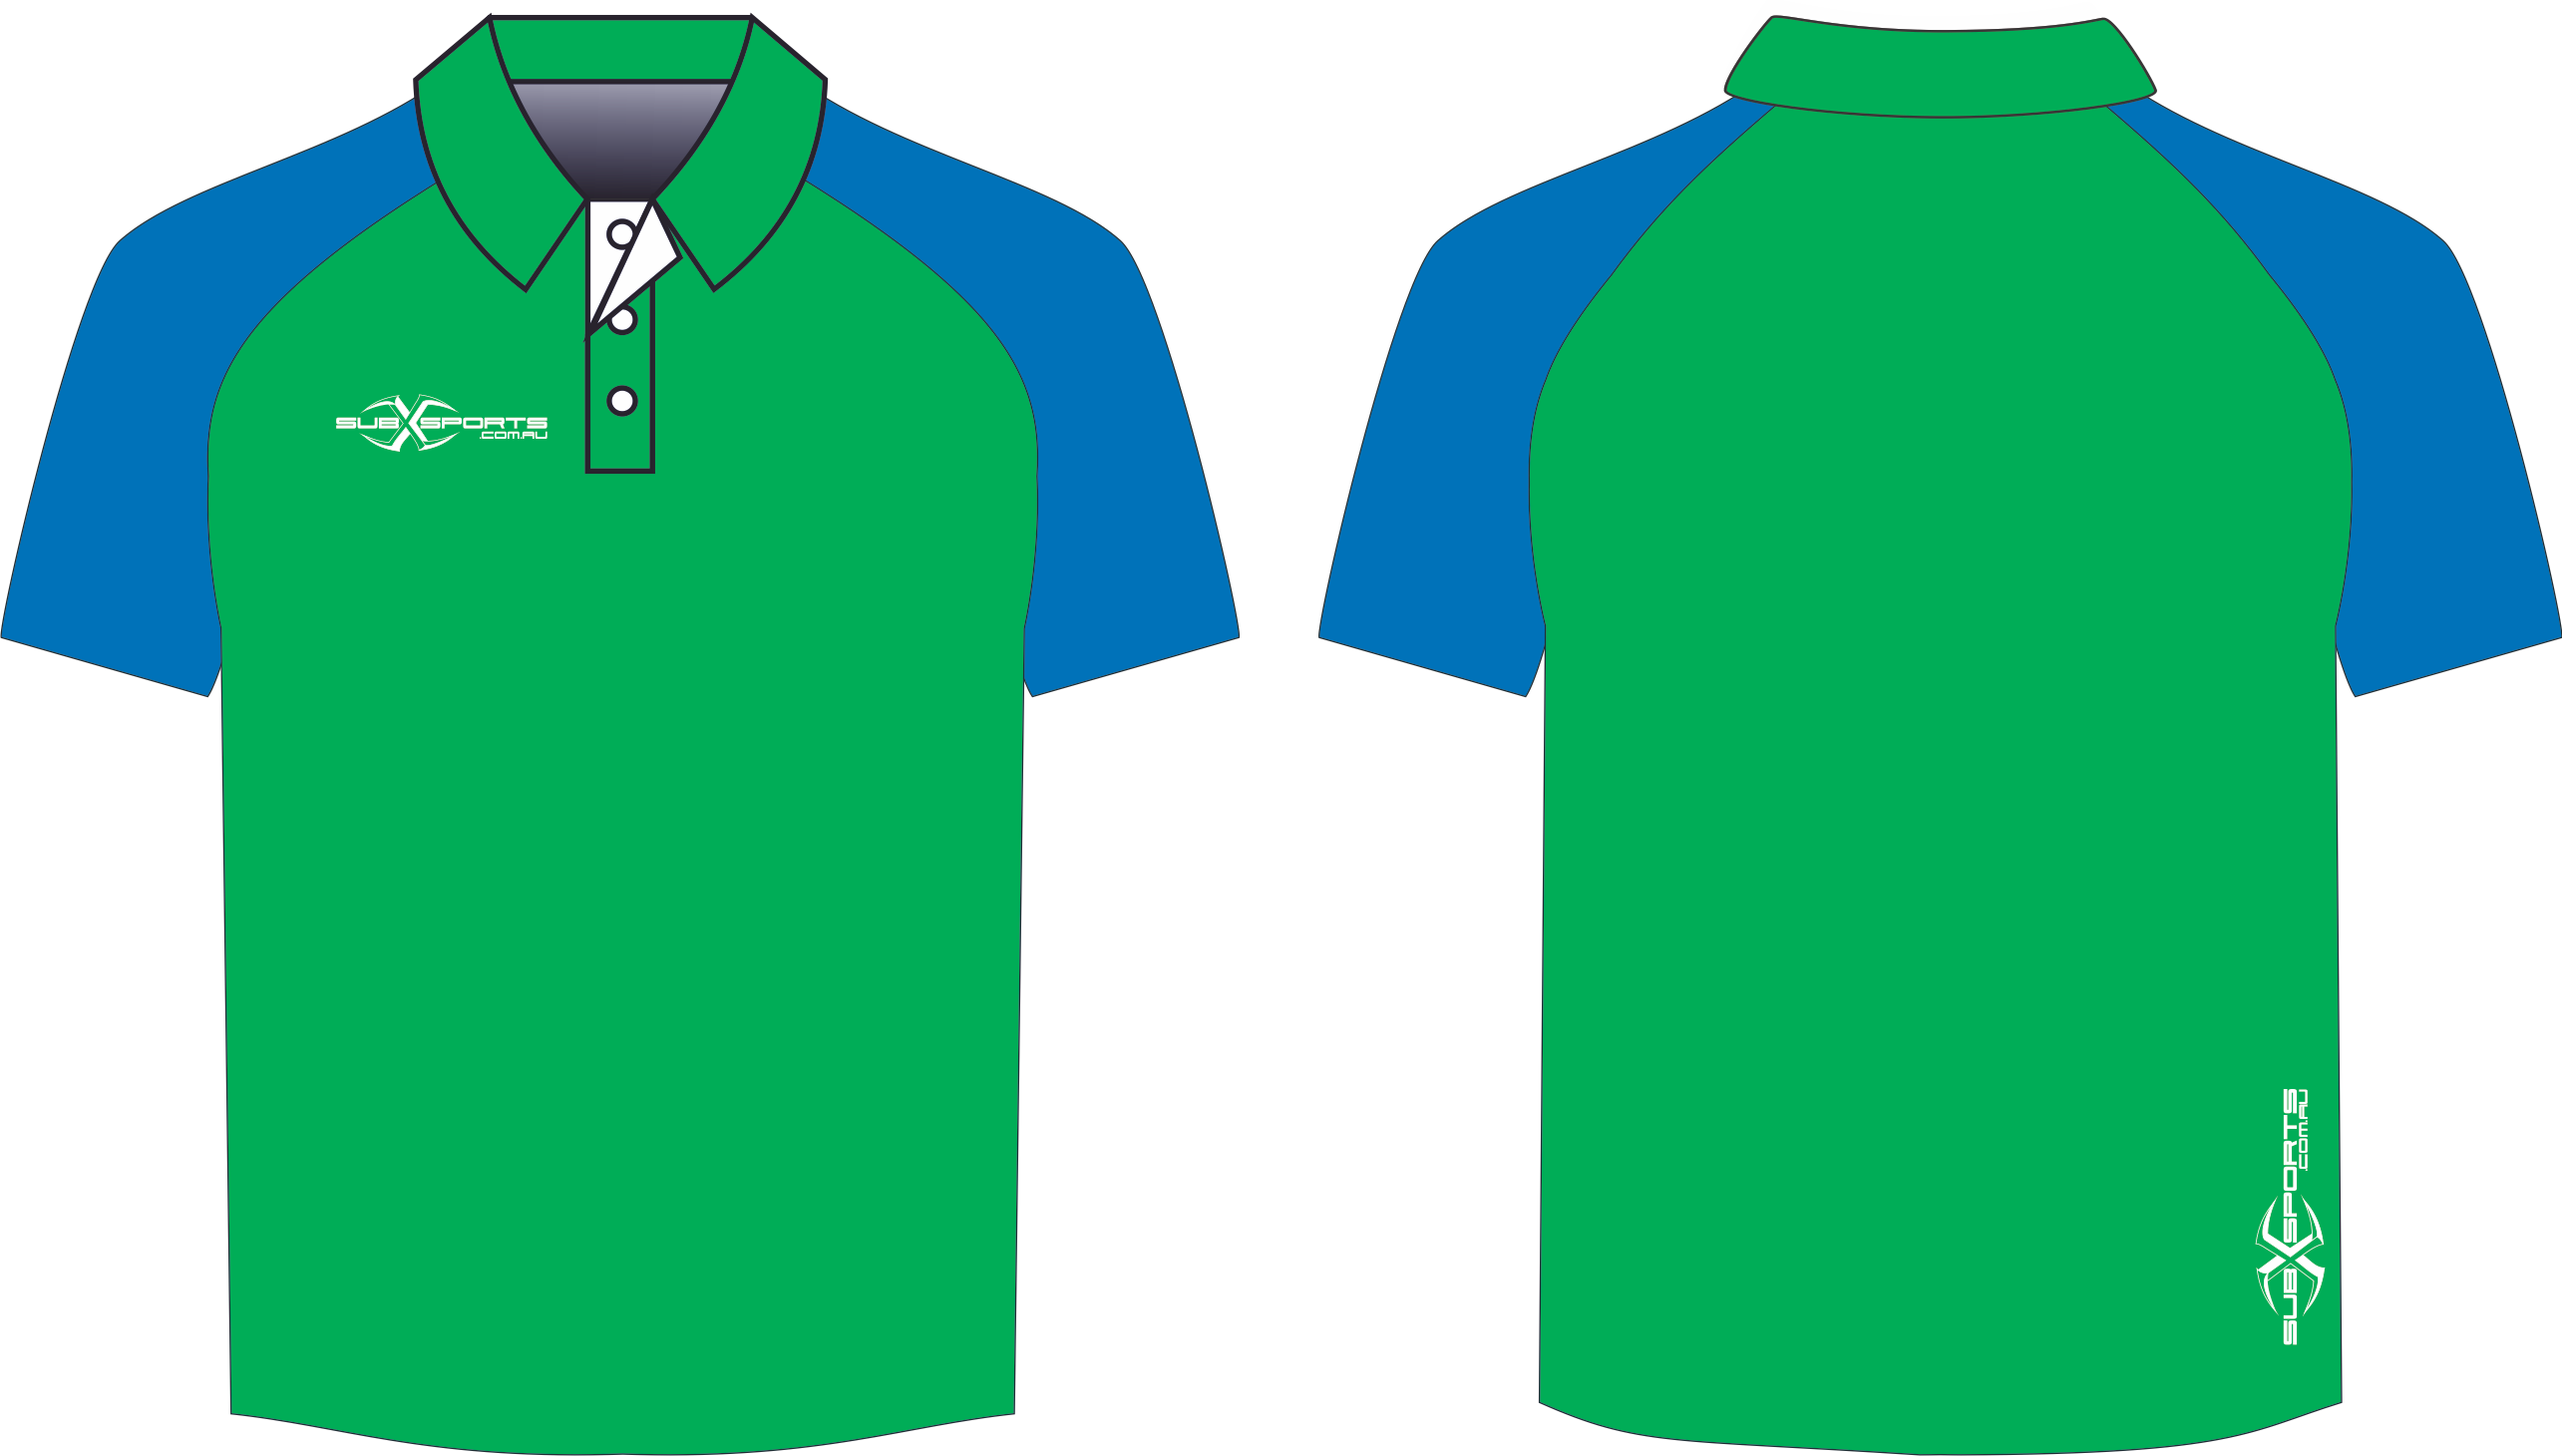 S206XP Sub Polo Green Blue.png